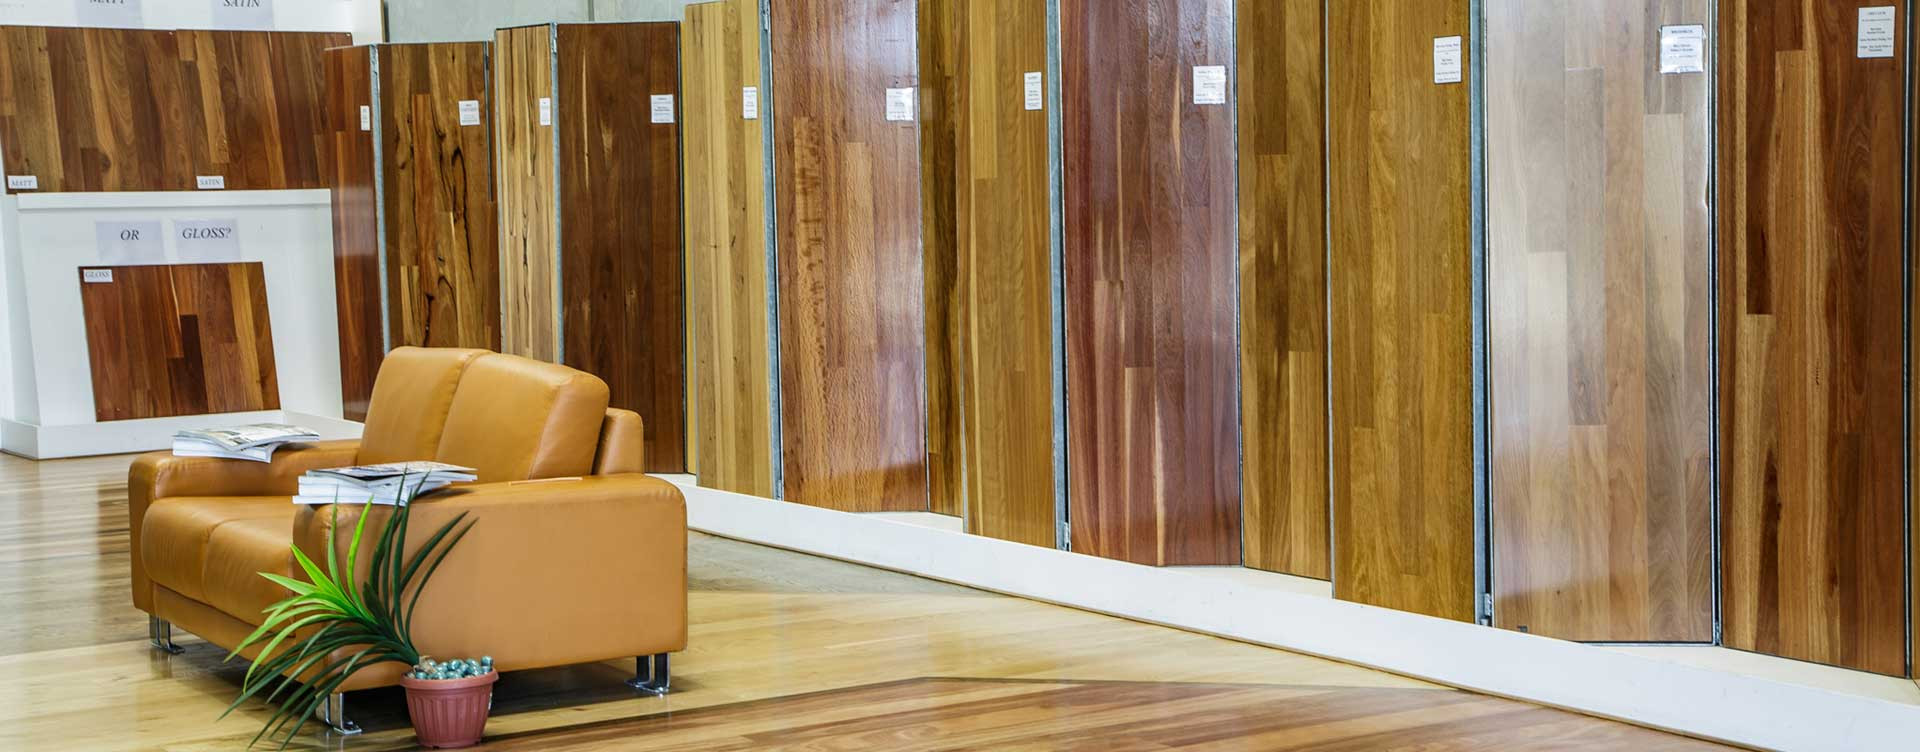 hardwood floor refinishing bend oregon of timber flooring perth coastal flooring wa quality wooden regarding fully trained and friendly staff to assist with every aspect of your query